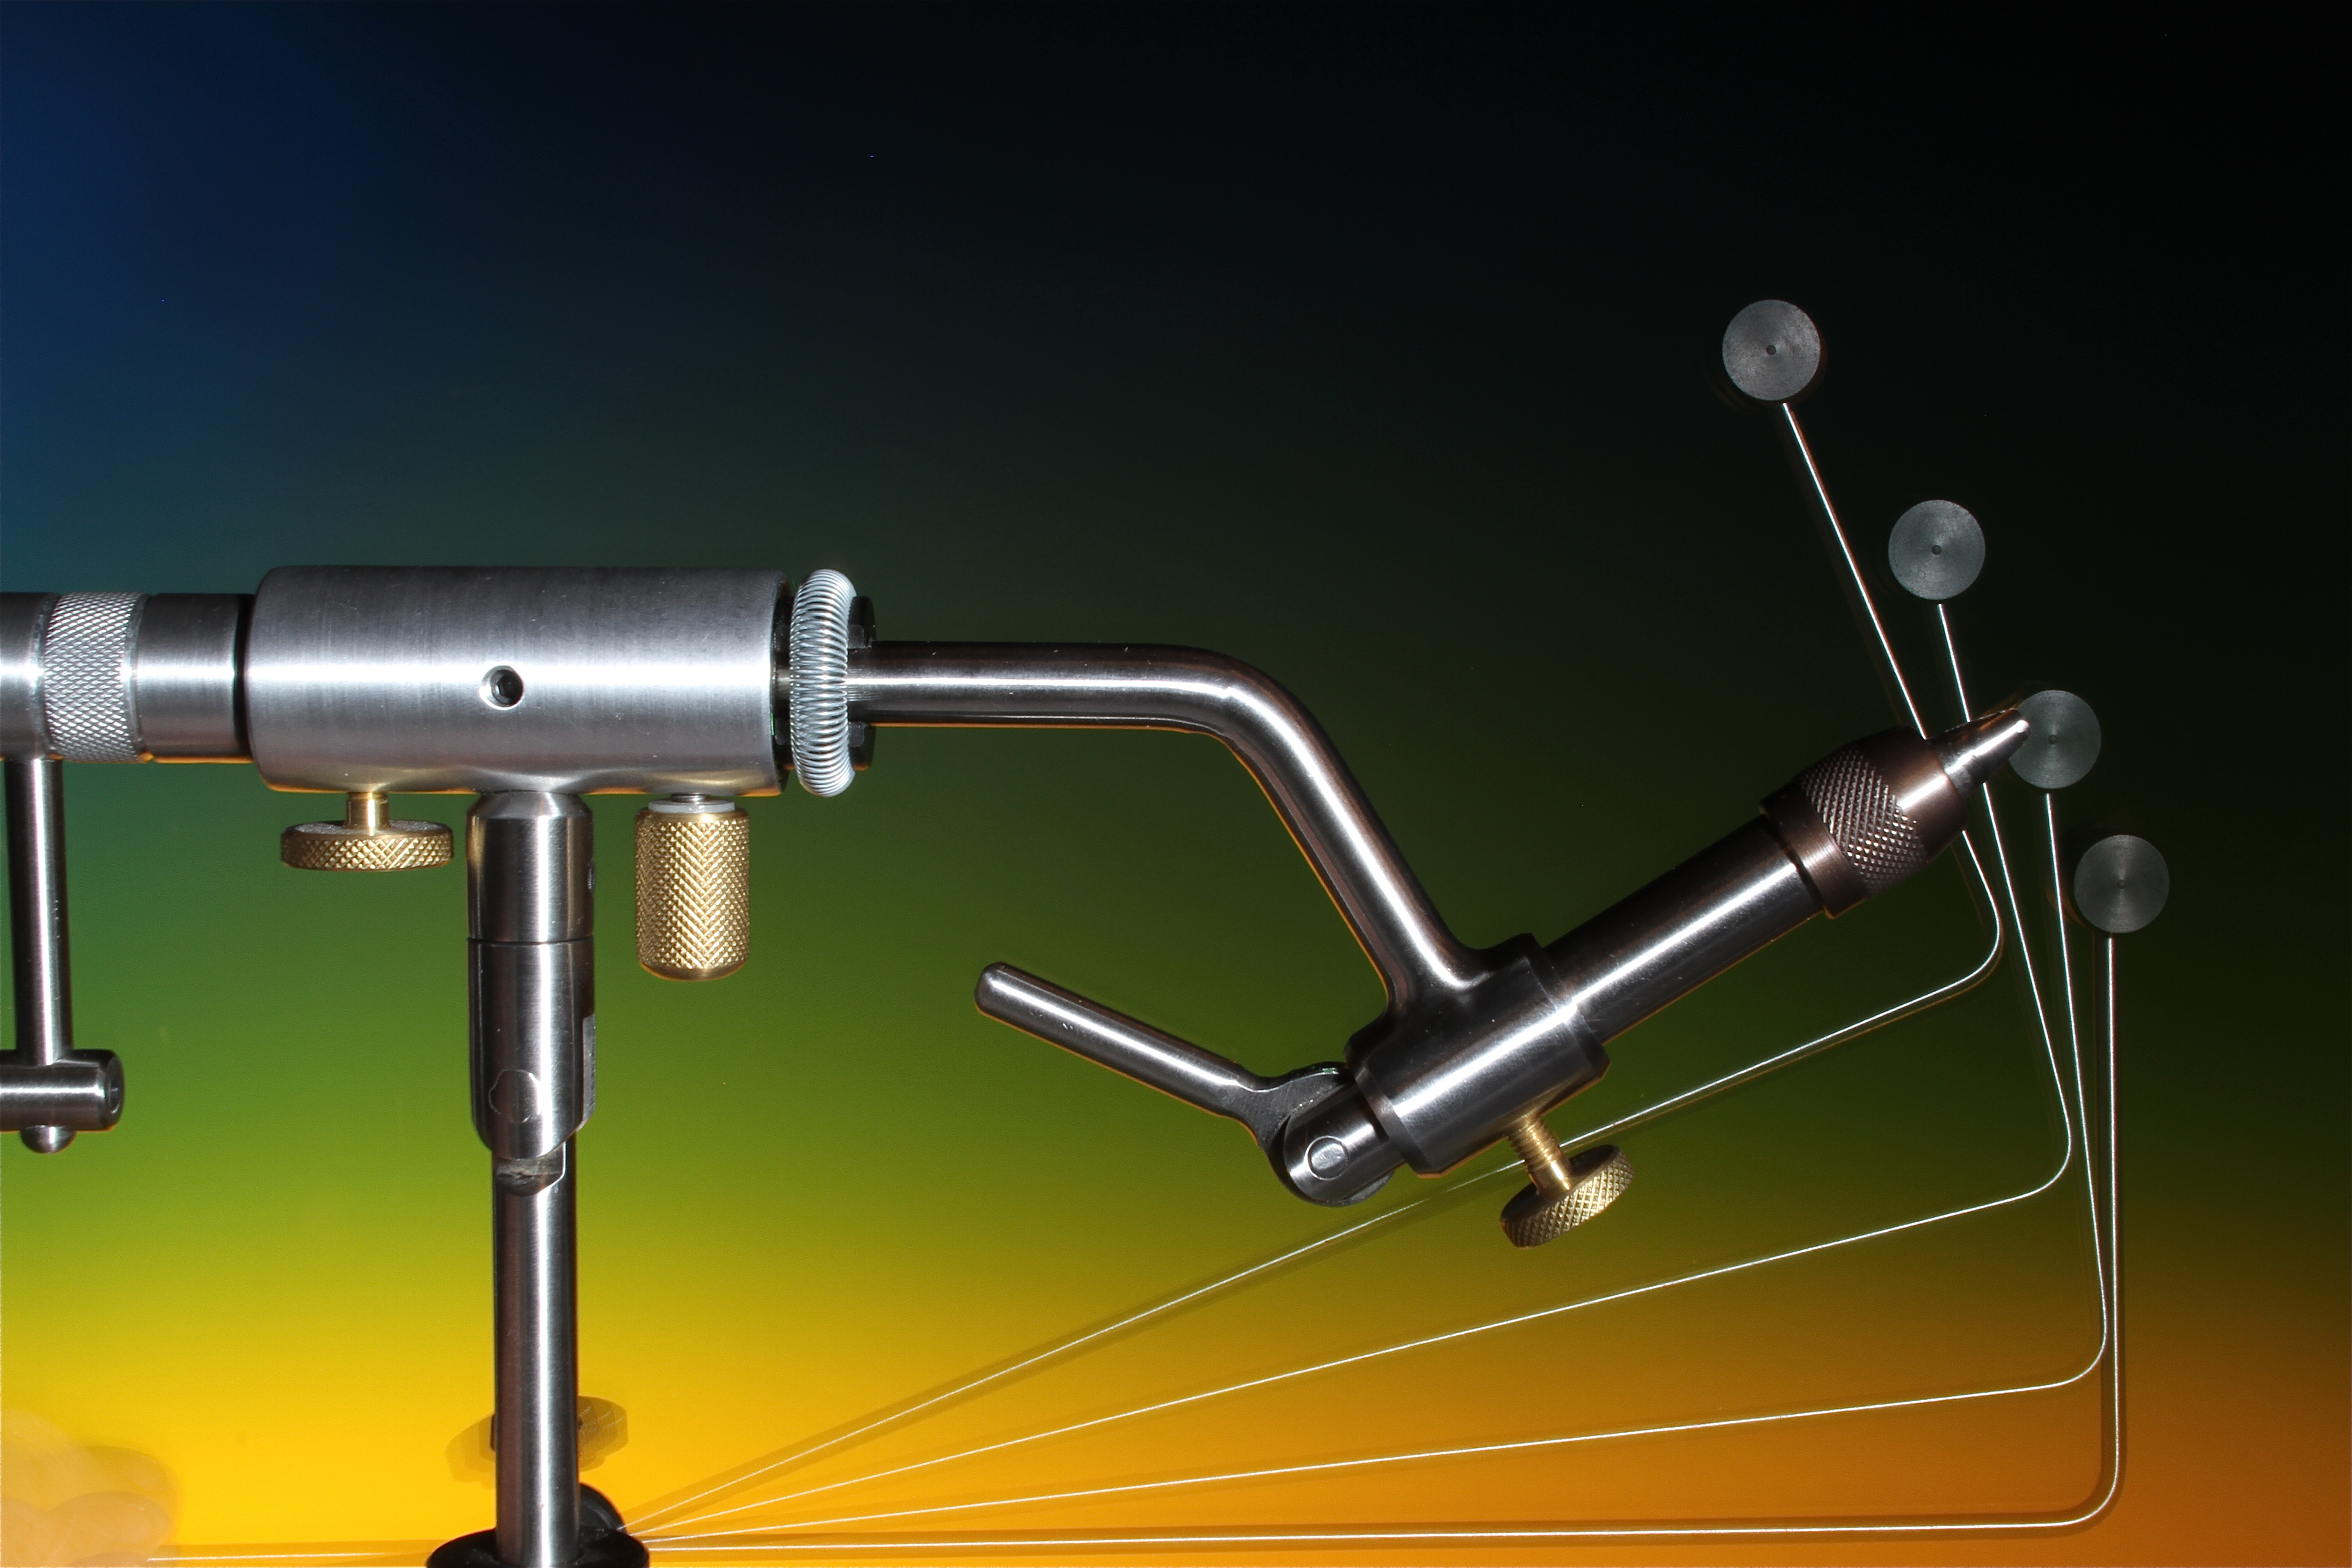 The bobbin cradel can be positioned into any possible angle required by the tyer.